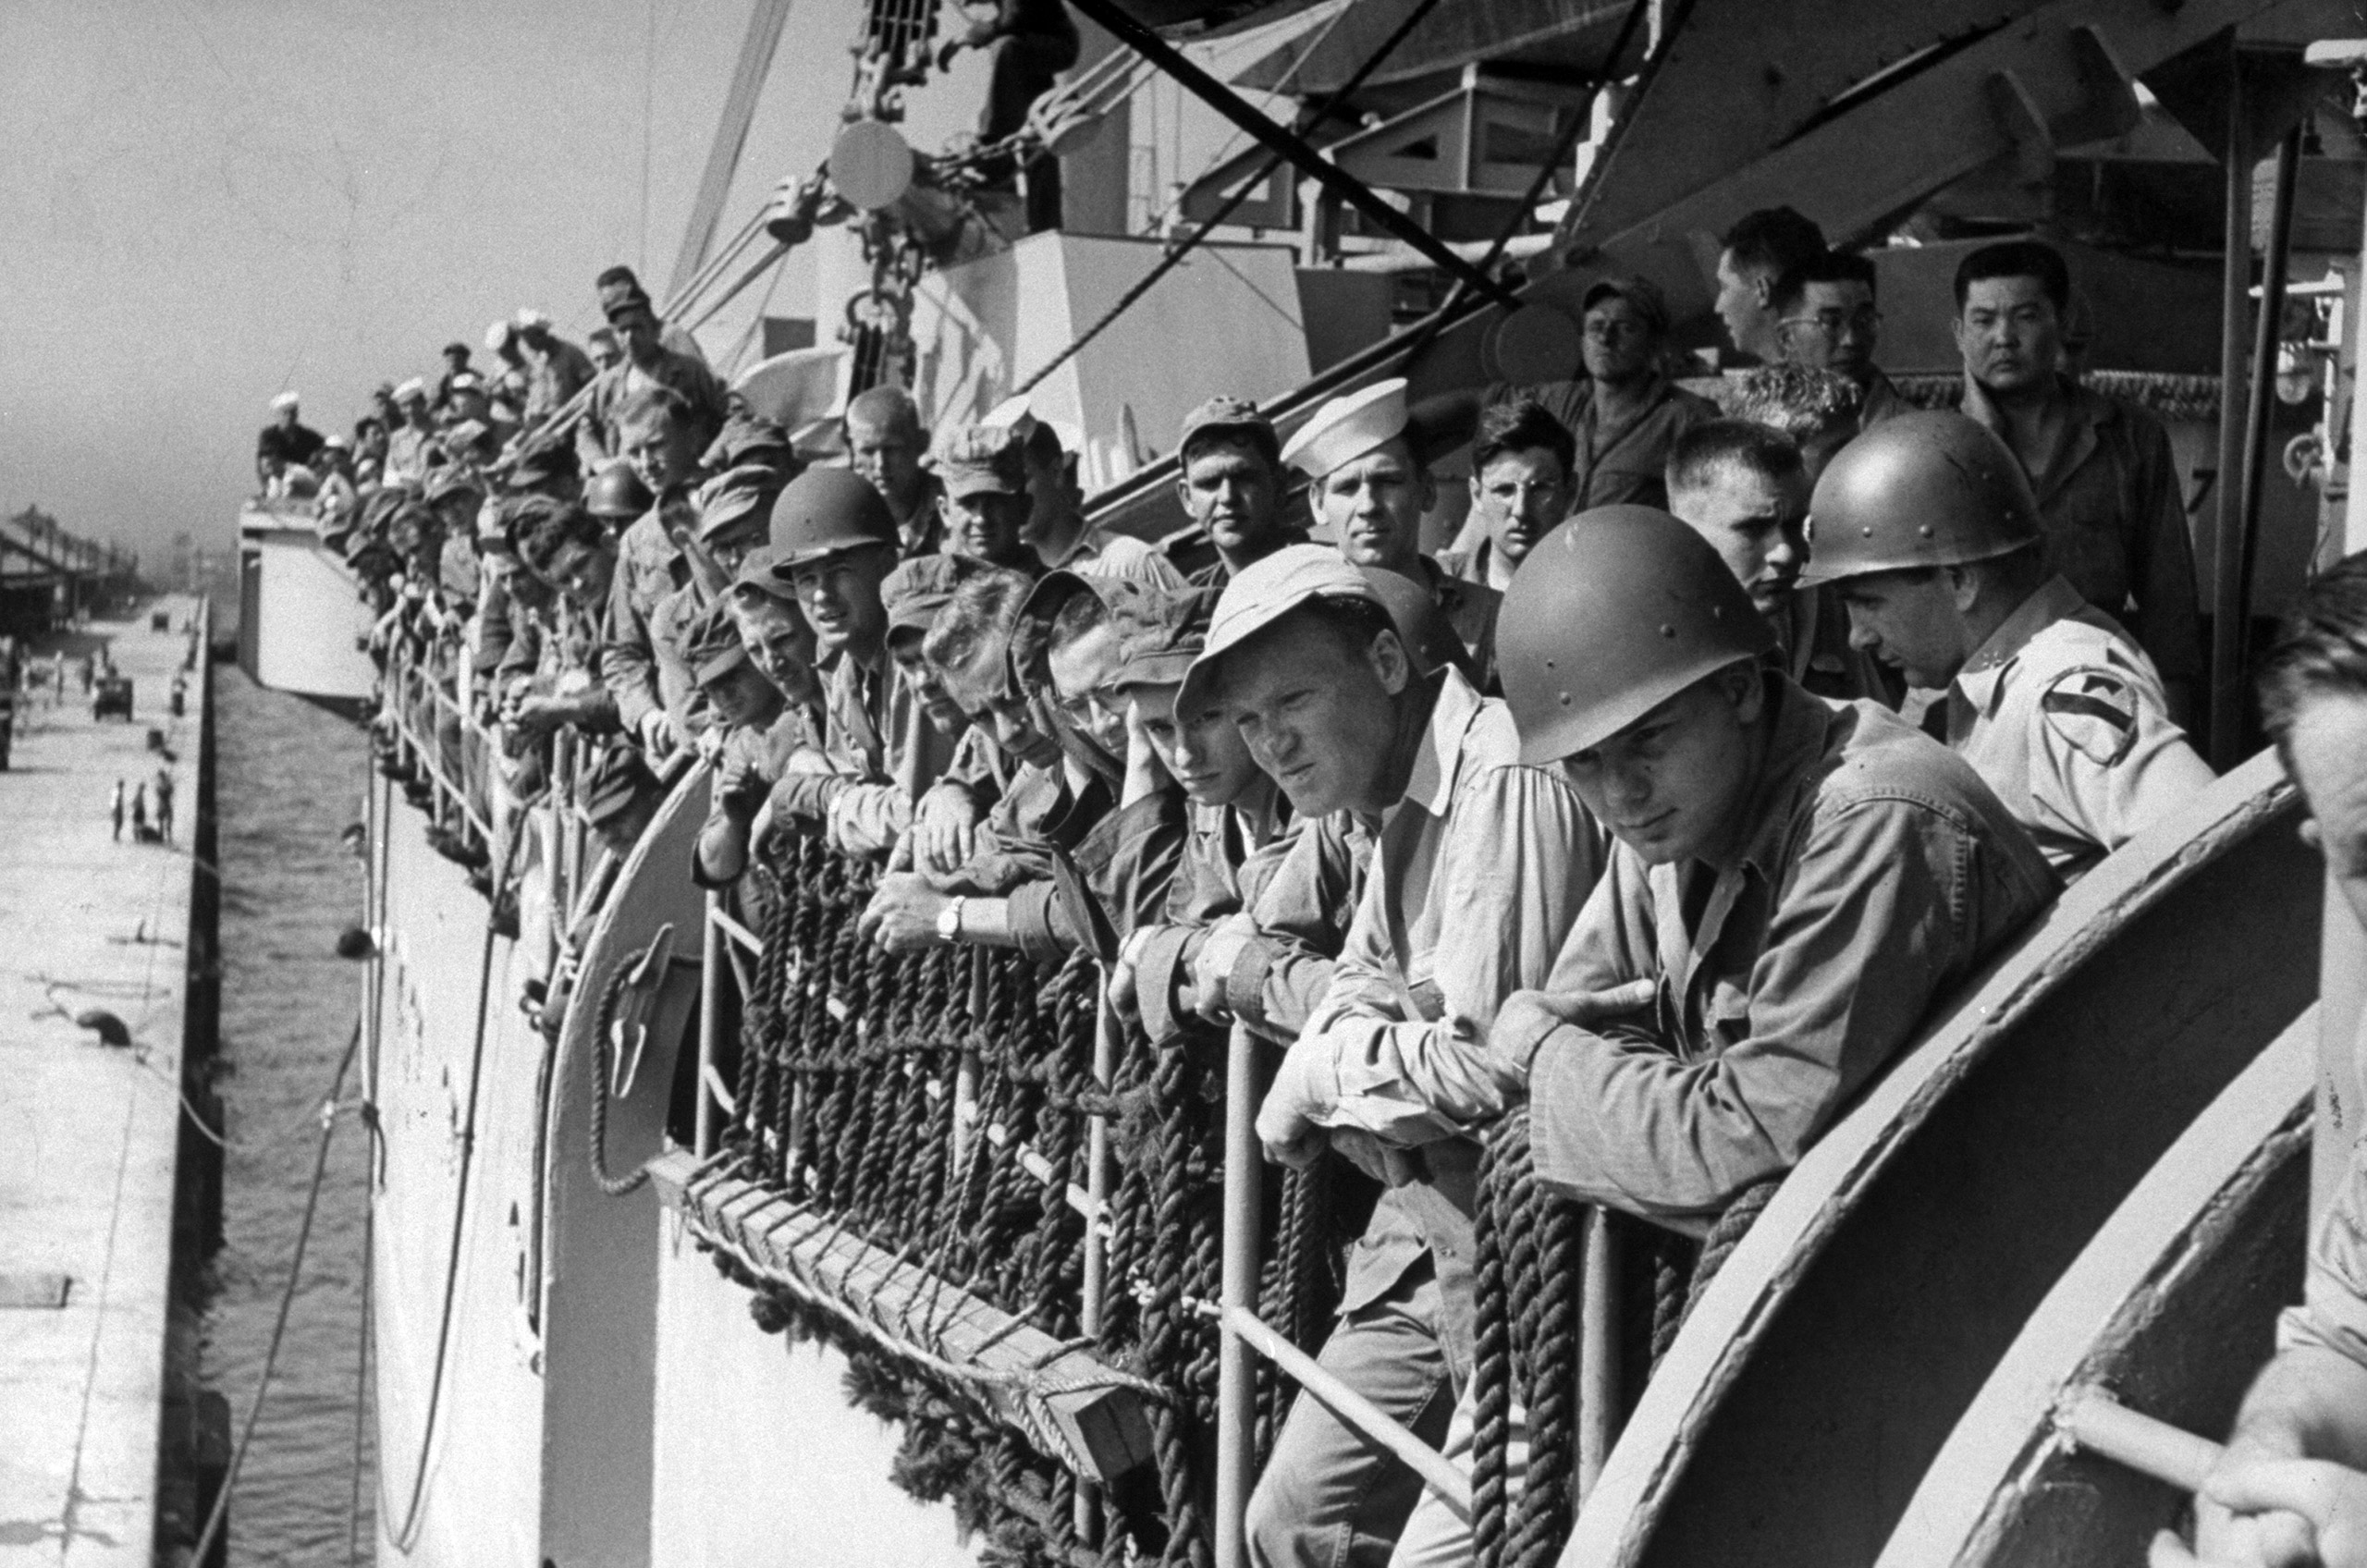 <b>Caption from LIFE.</b> Leaving Japan for unknown destination, soldiers of 1st Cavalry crowd transport's rail for last look at the dock.